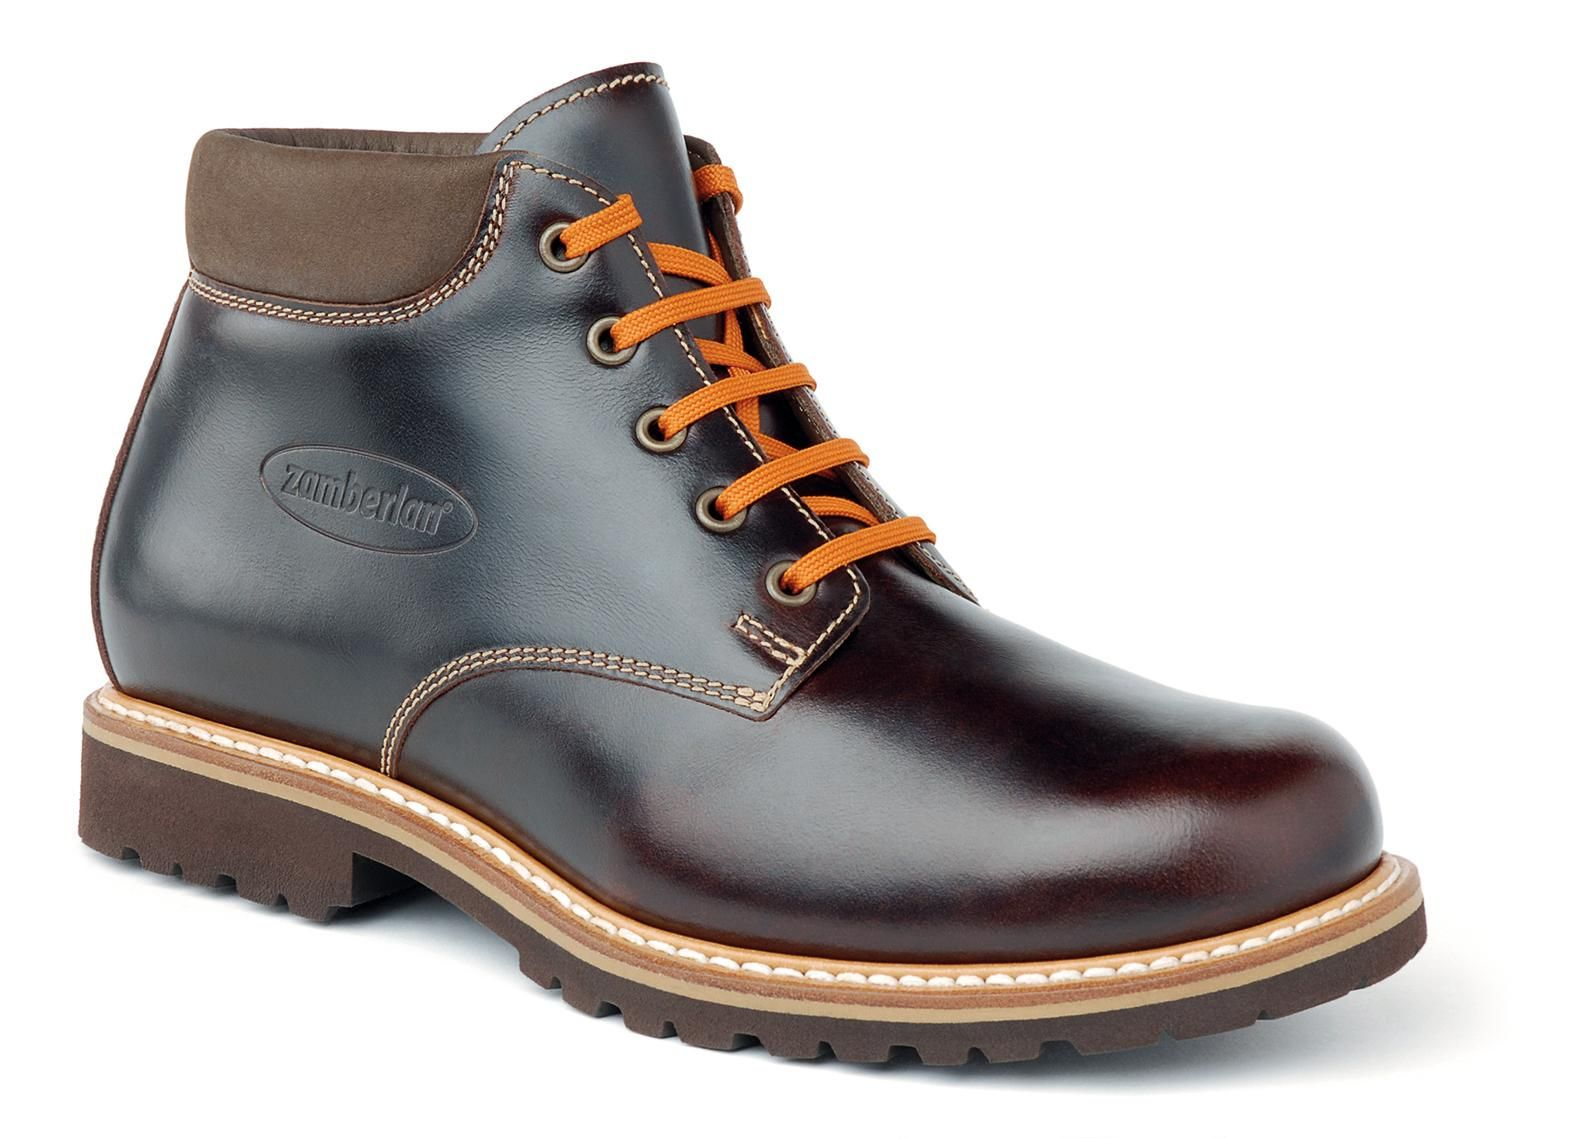 caceaf05858 1132 SIENA GW - Bottes Lifestyle - Brick | Boots in 2019